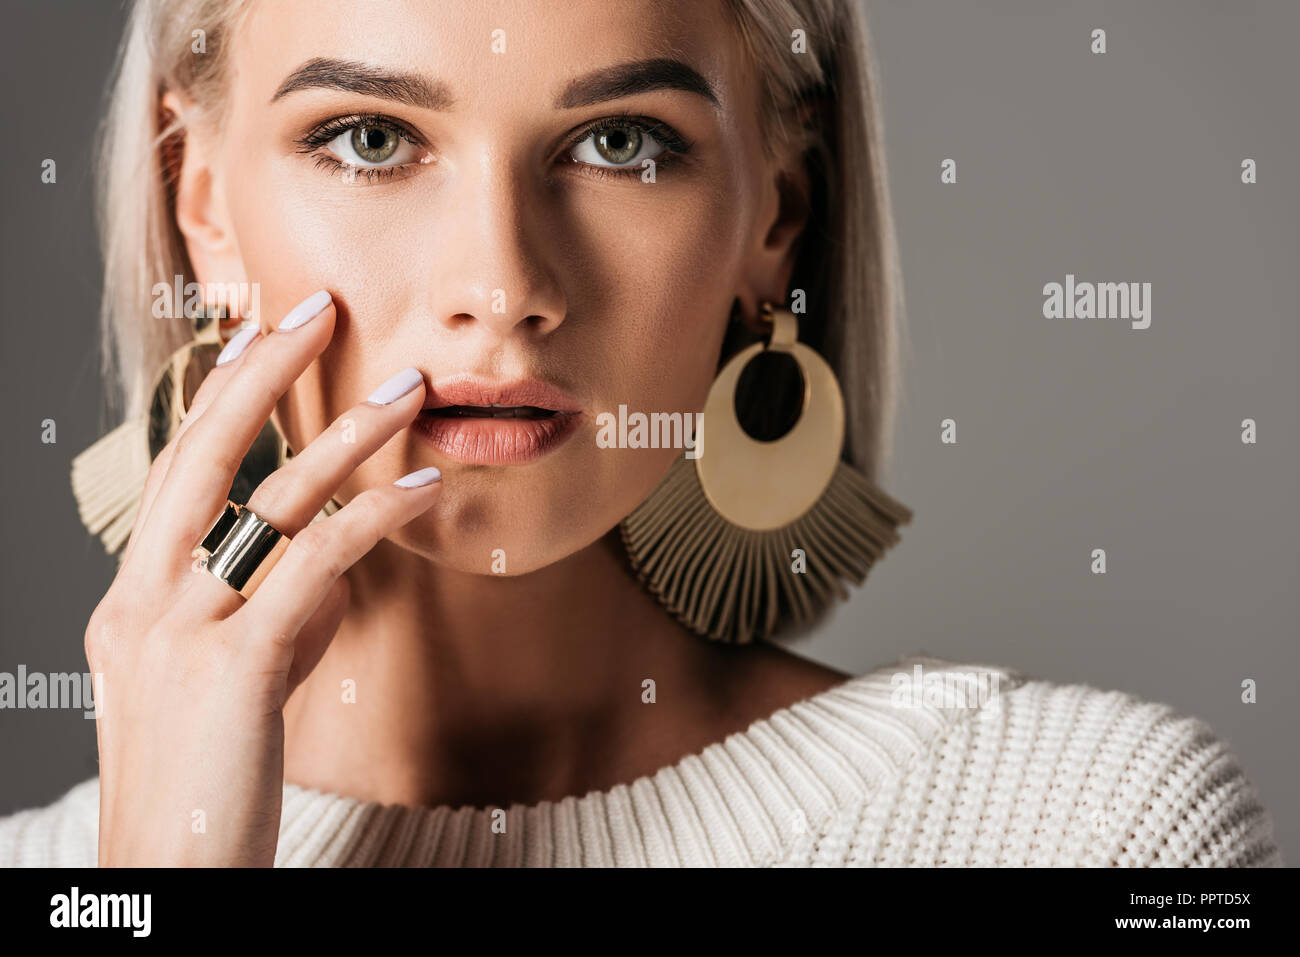 eb42461d466 attractive blonde girl posing in white sweater and big round earrings